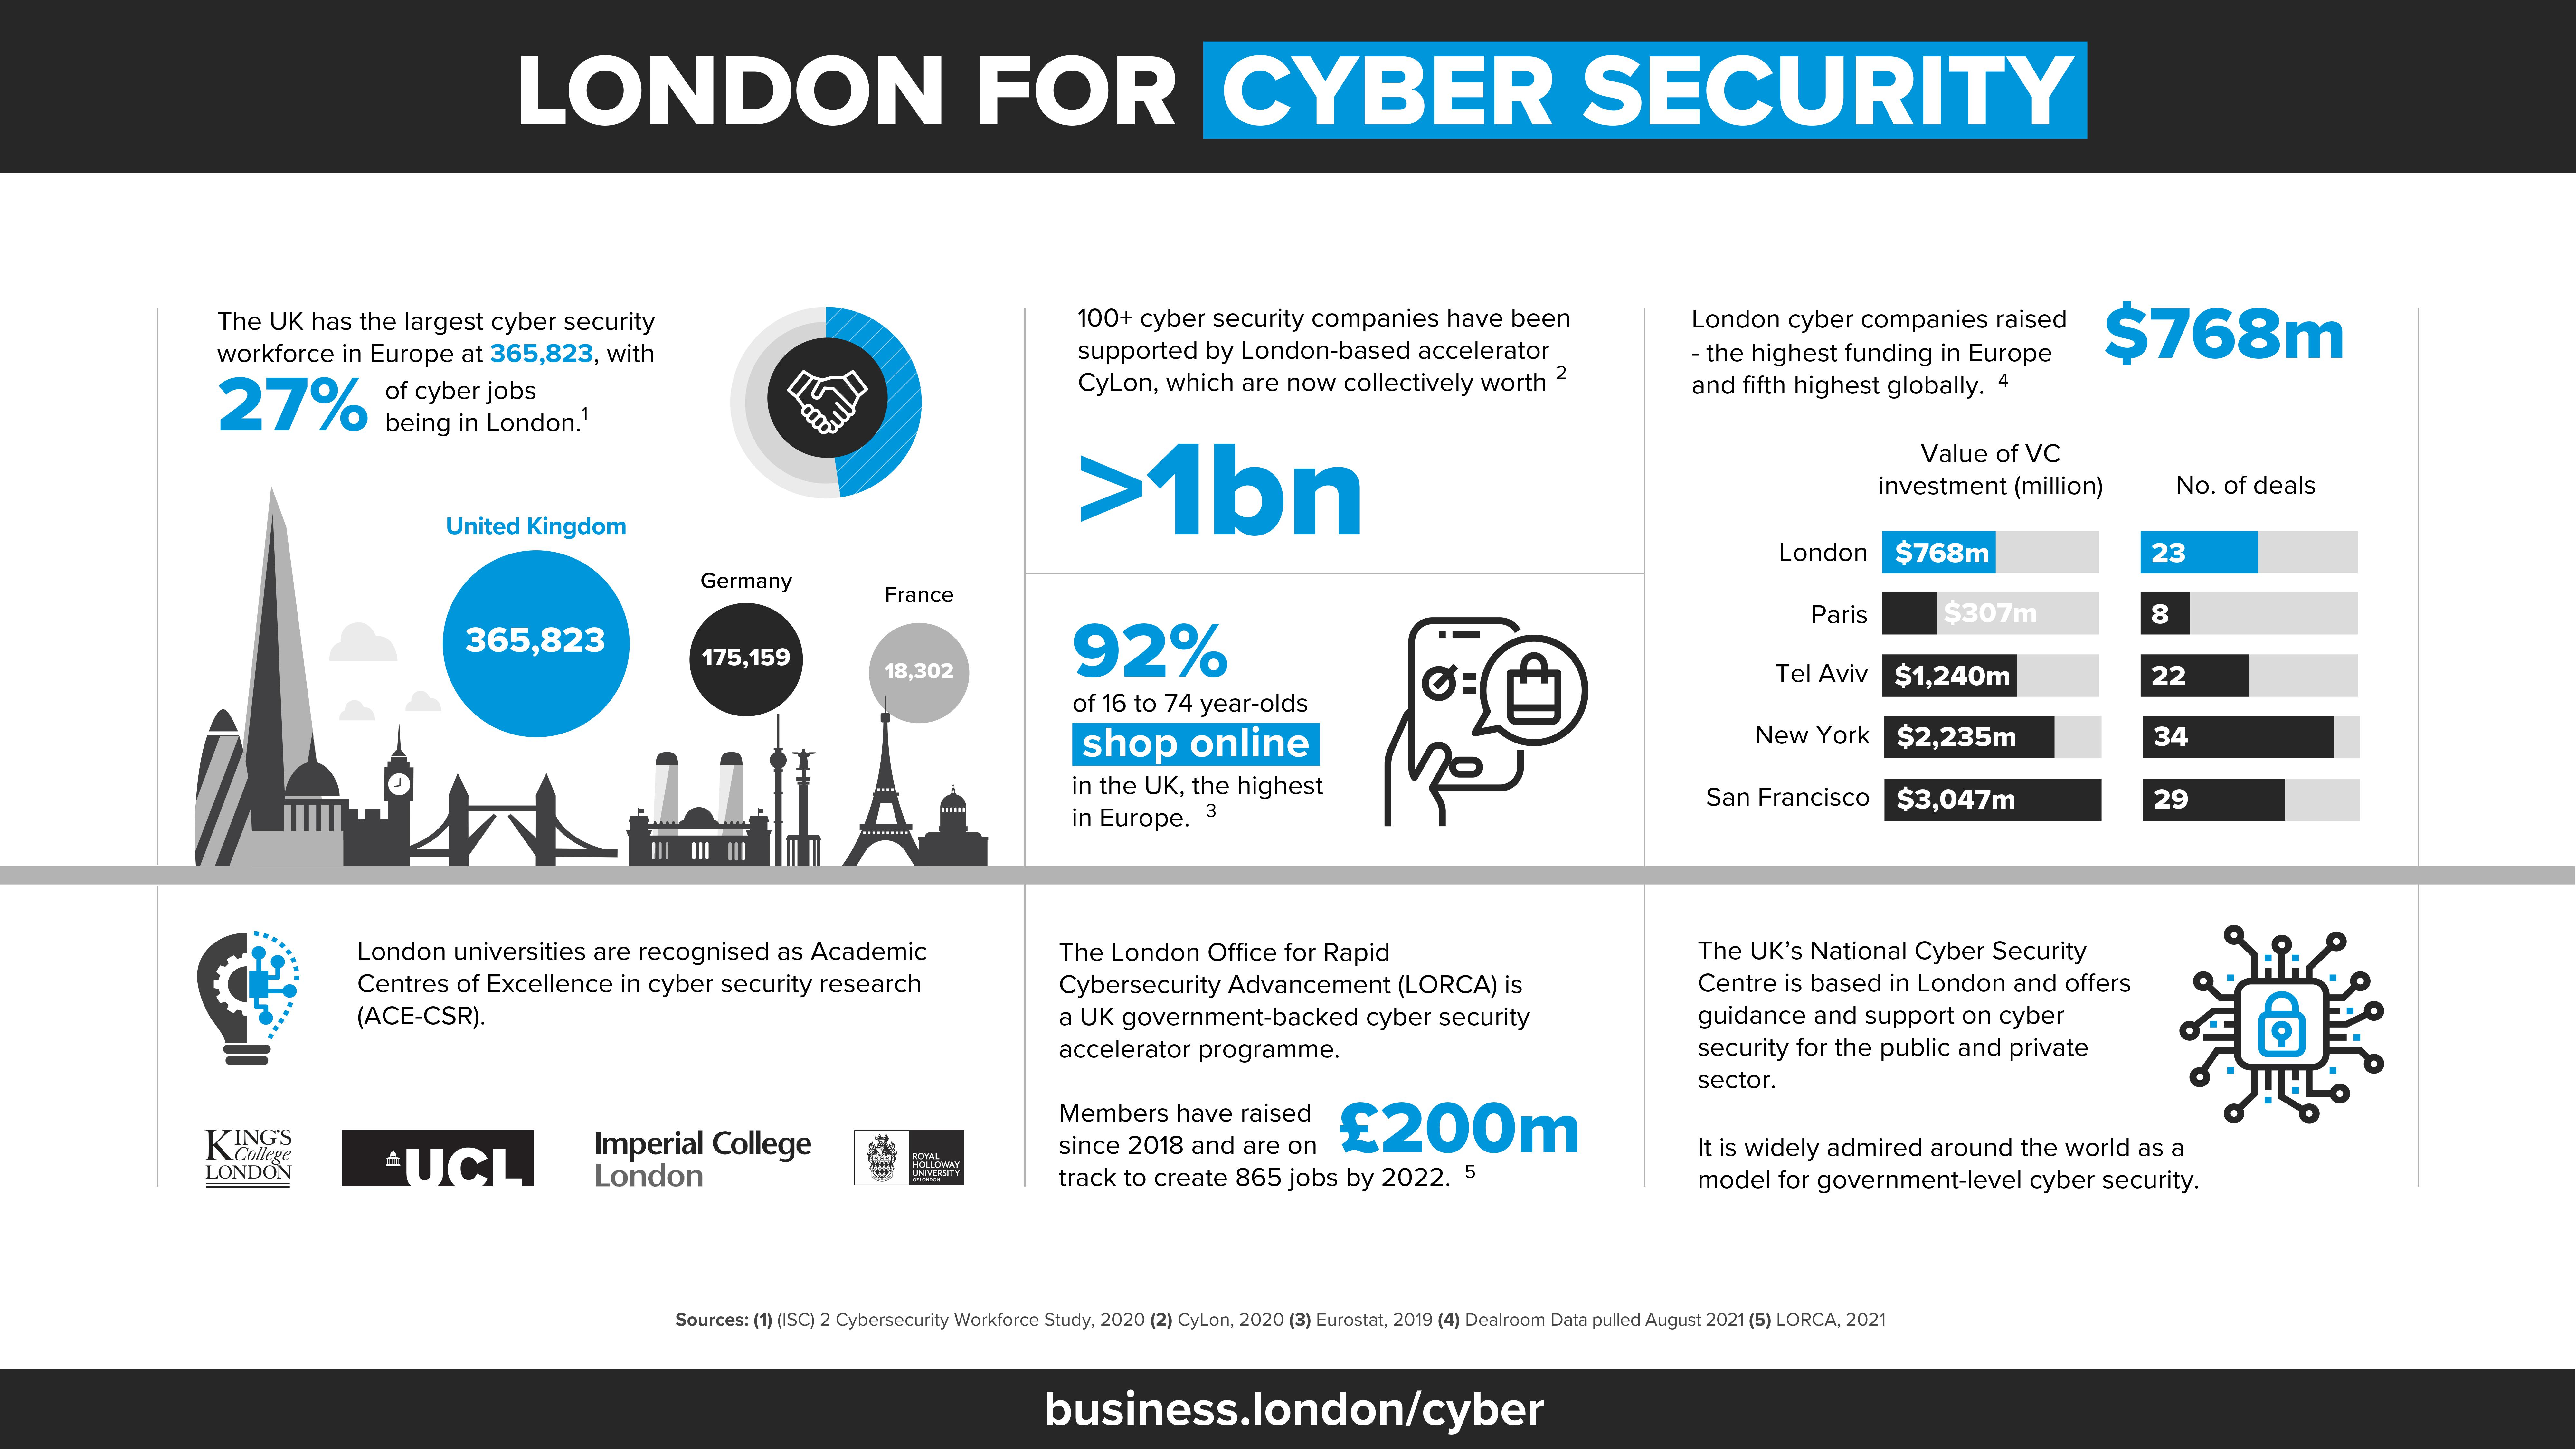 London for cyber security infographic.